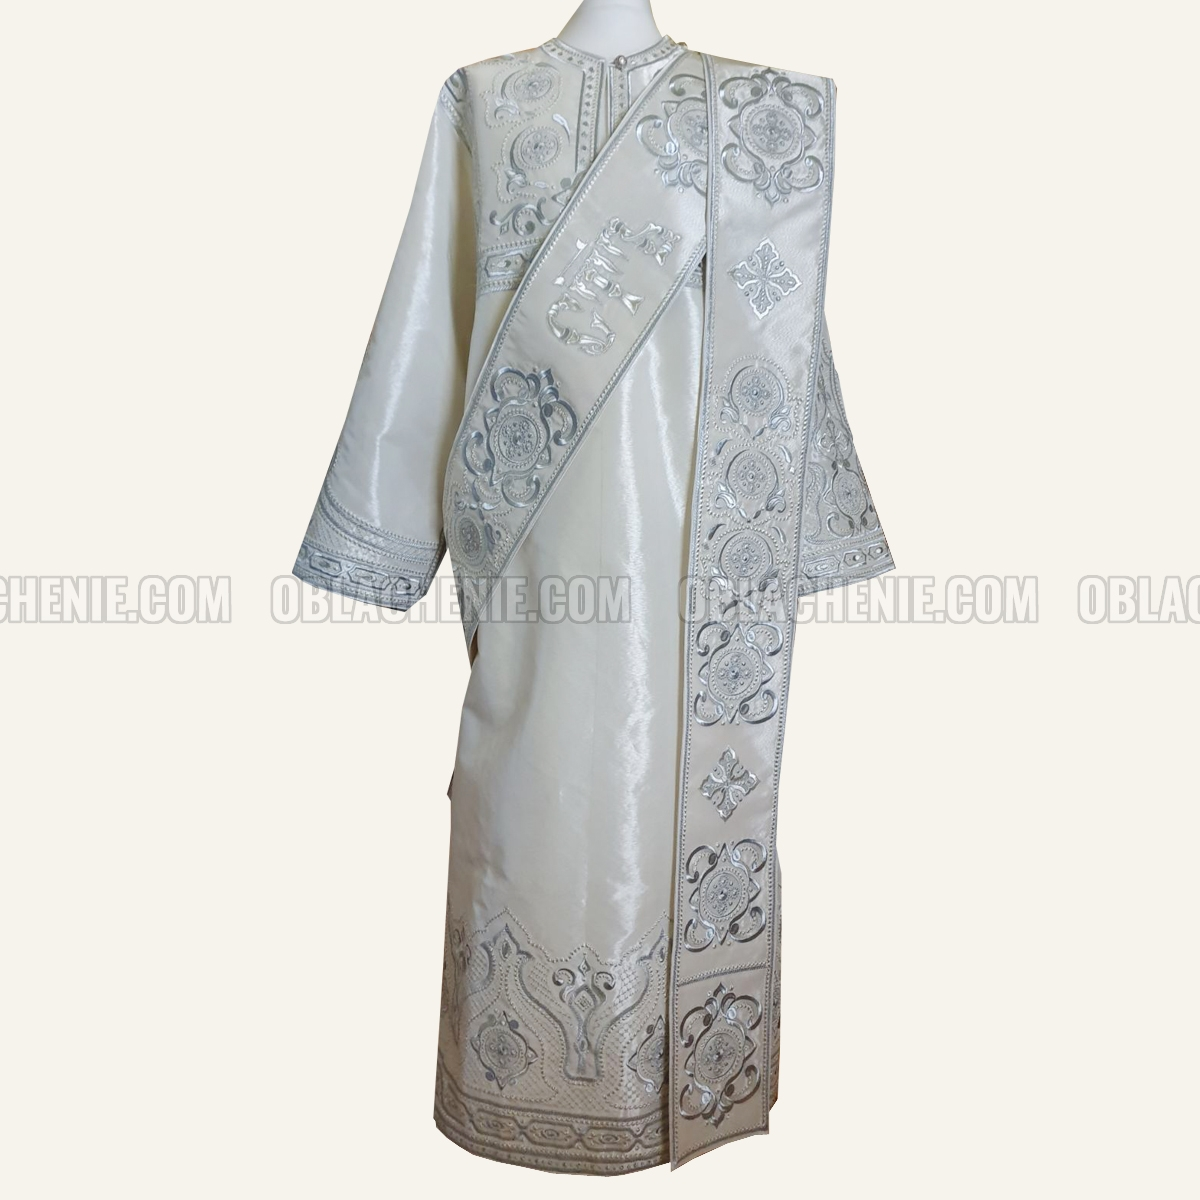 DEACON'S VESTMENTS 10915